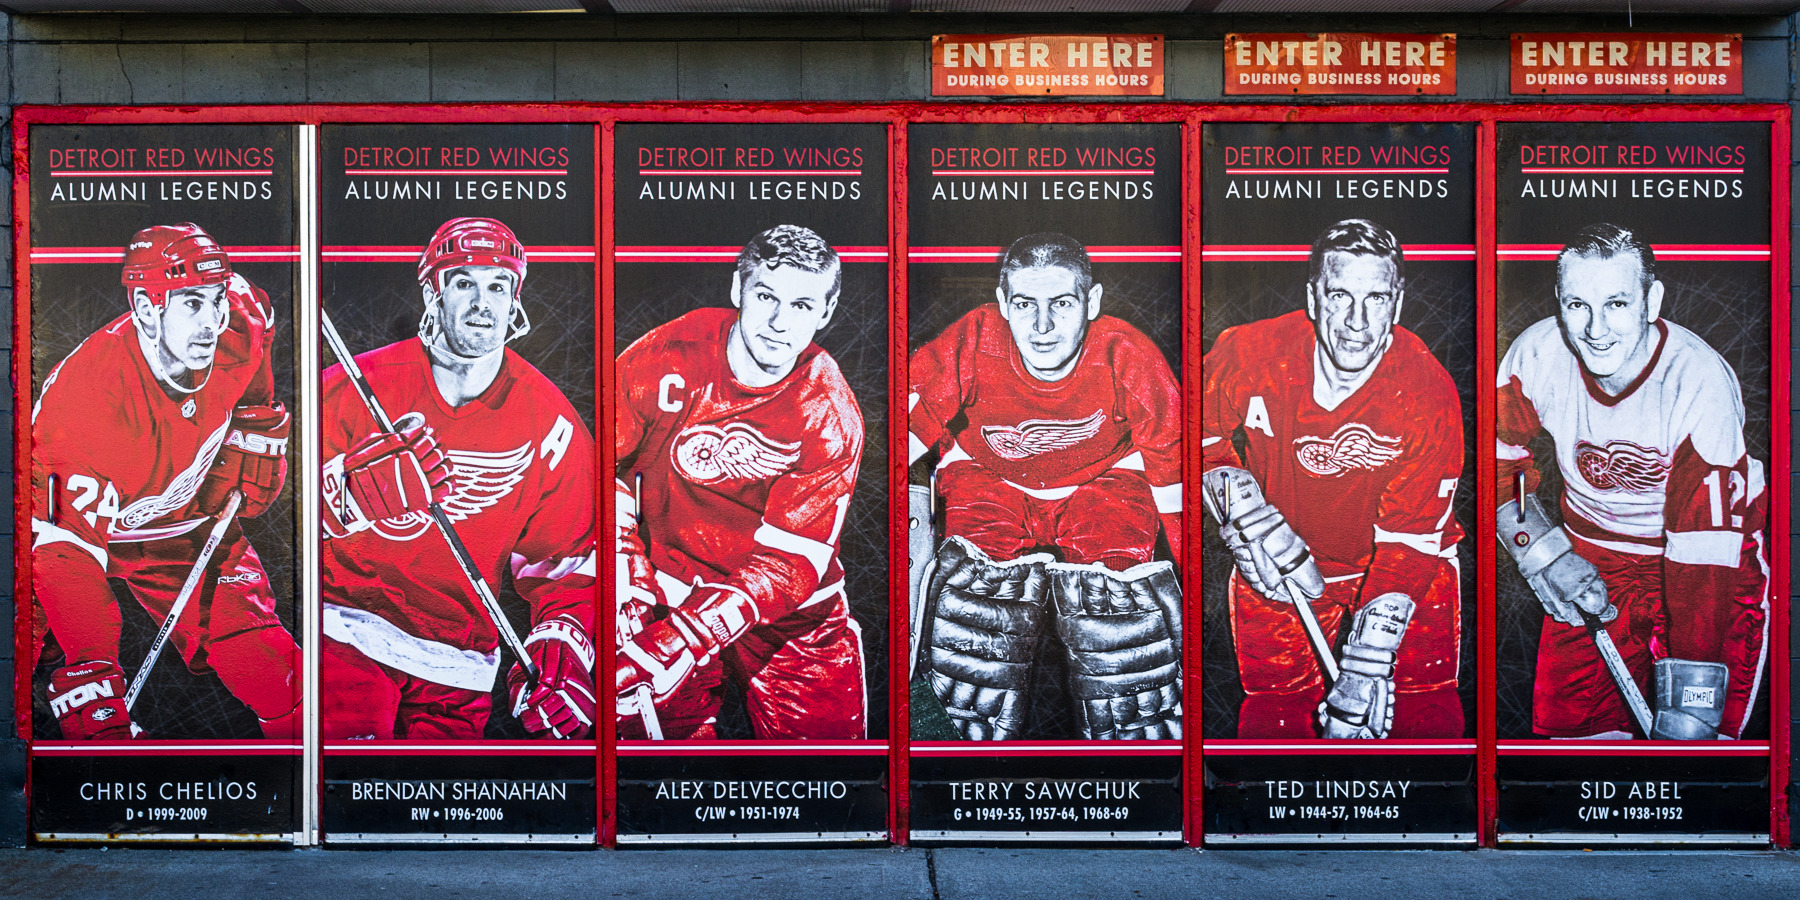 Detroit Sports Joe Louis Arena - 6 Red Wings Legends